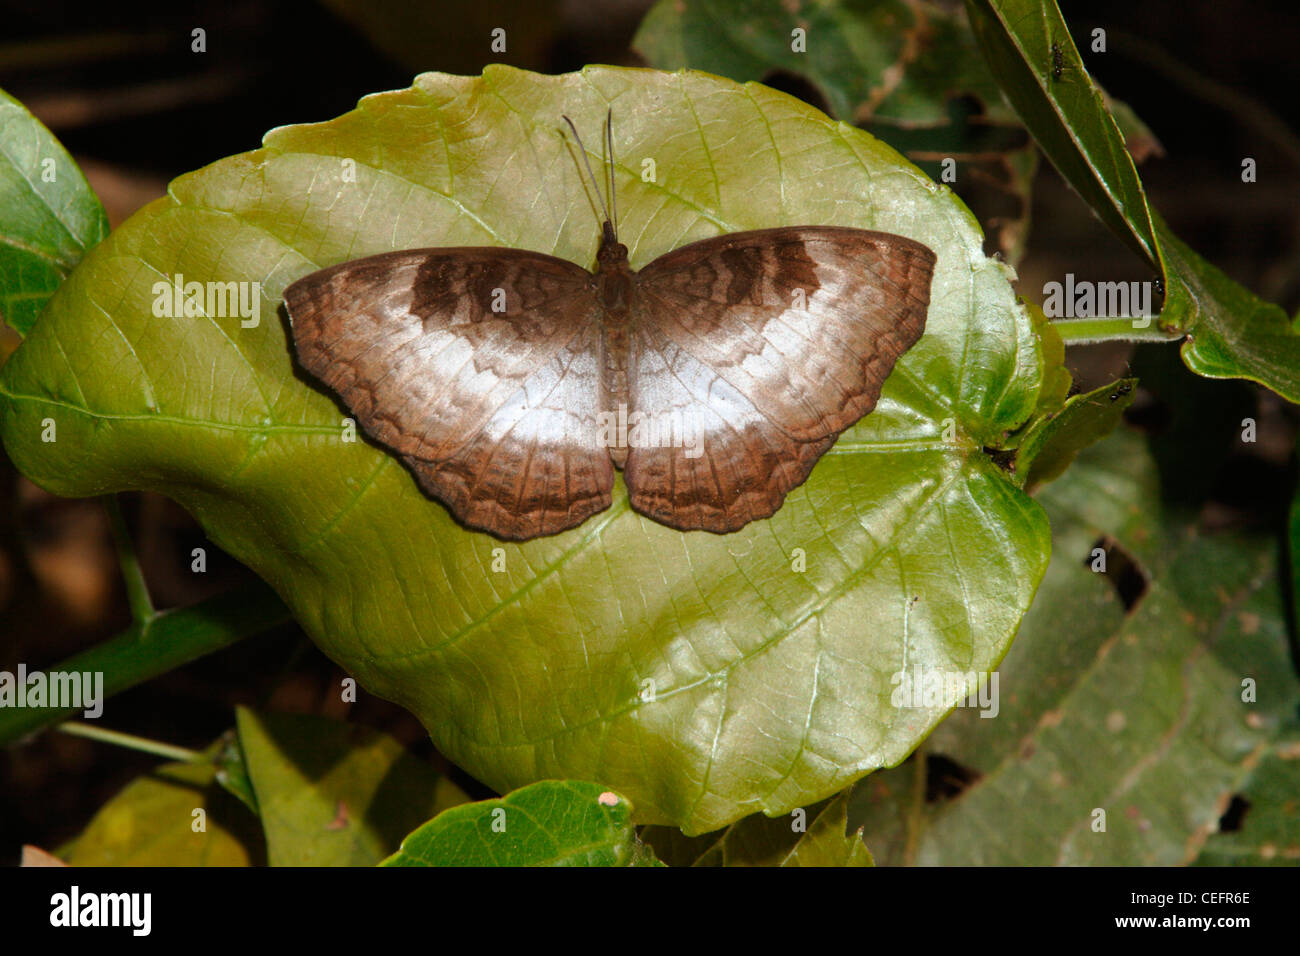 Bộ sưu tập cánh vẩy 4 - Page 8 African-castor-butterfly-ariadne-enotrea-nymphalidae-male-in-rainforest-CEFR6E